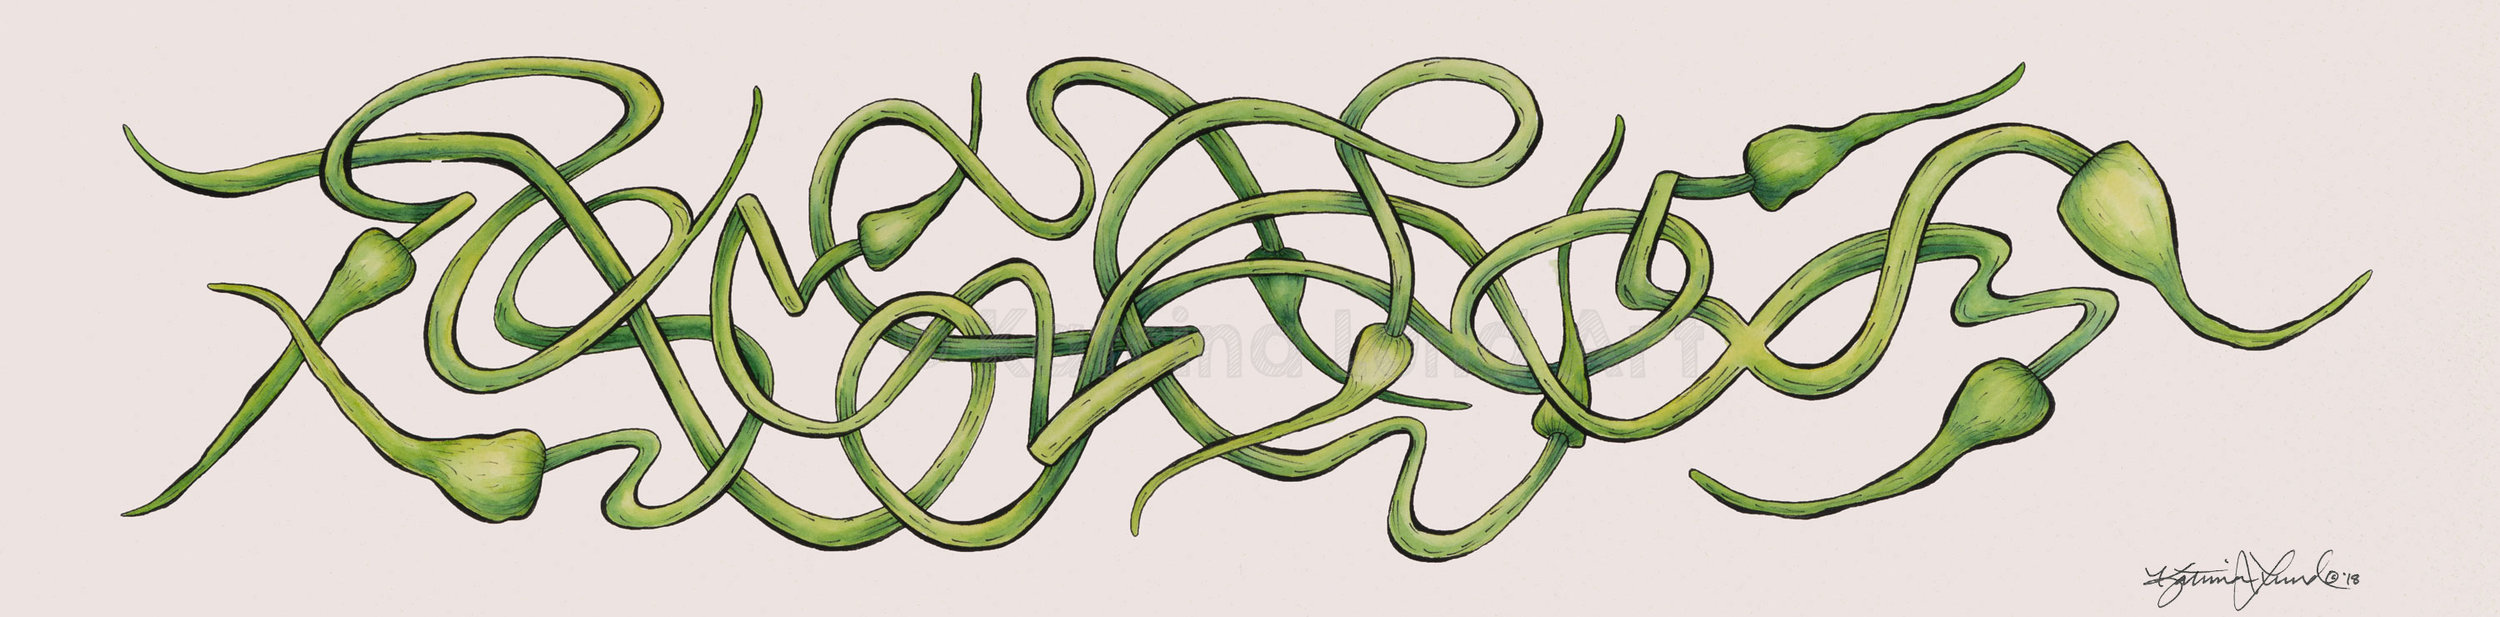 Garlic Scapes by Day